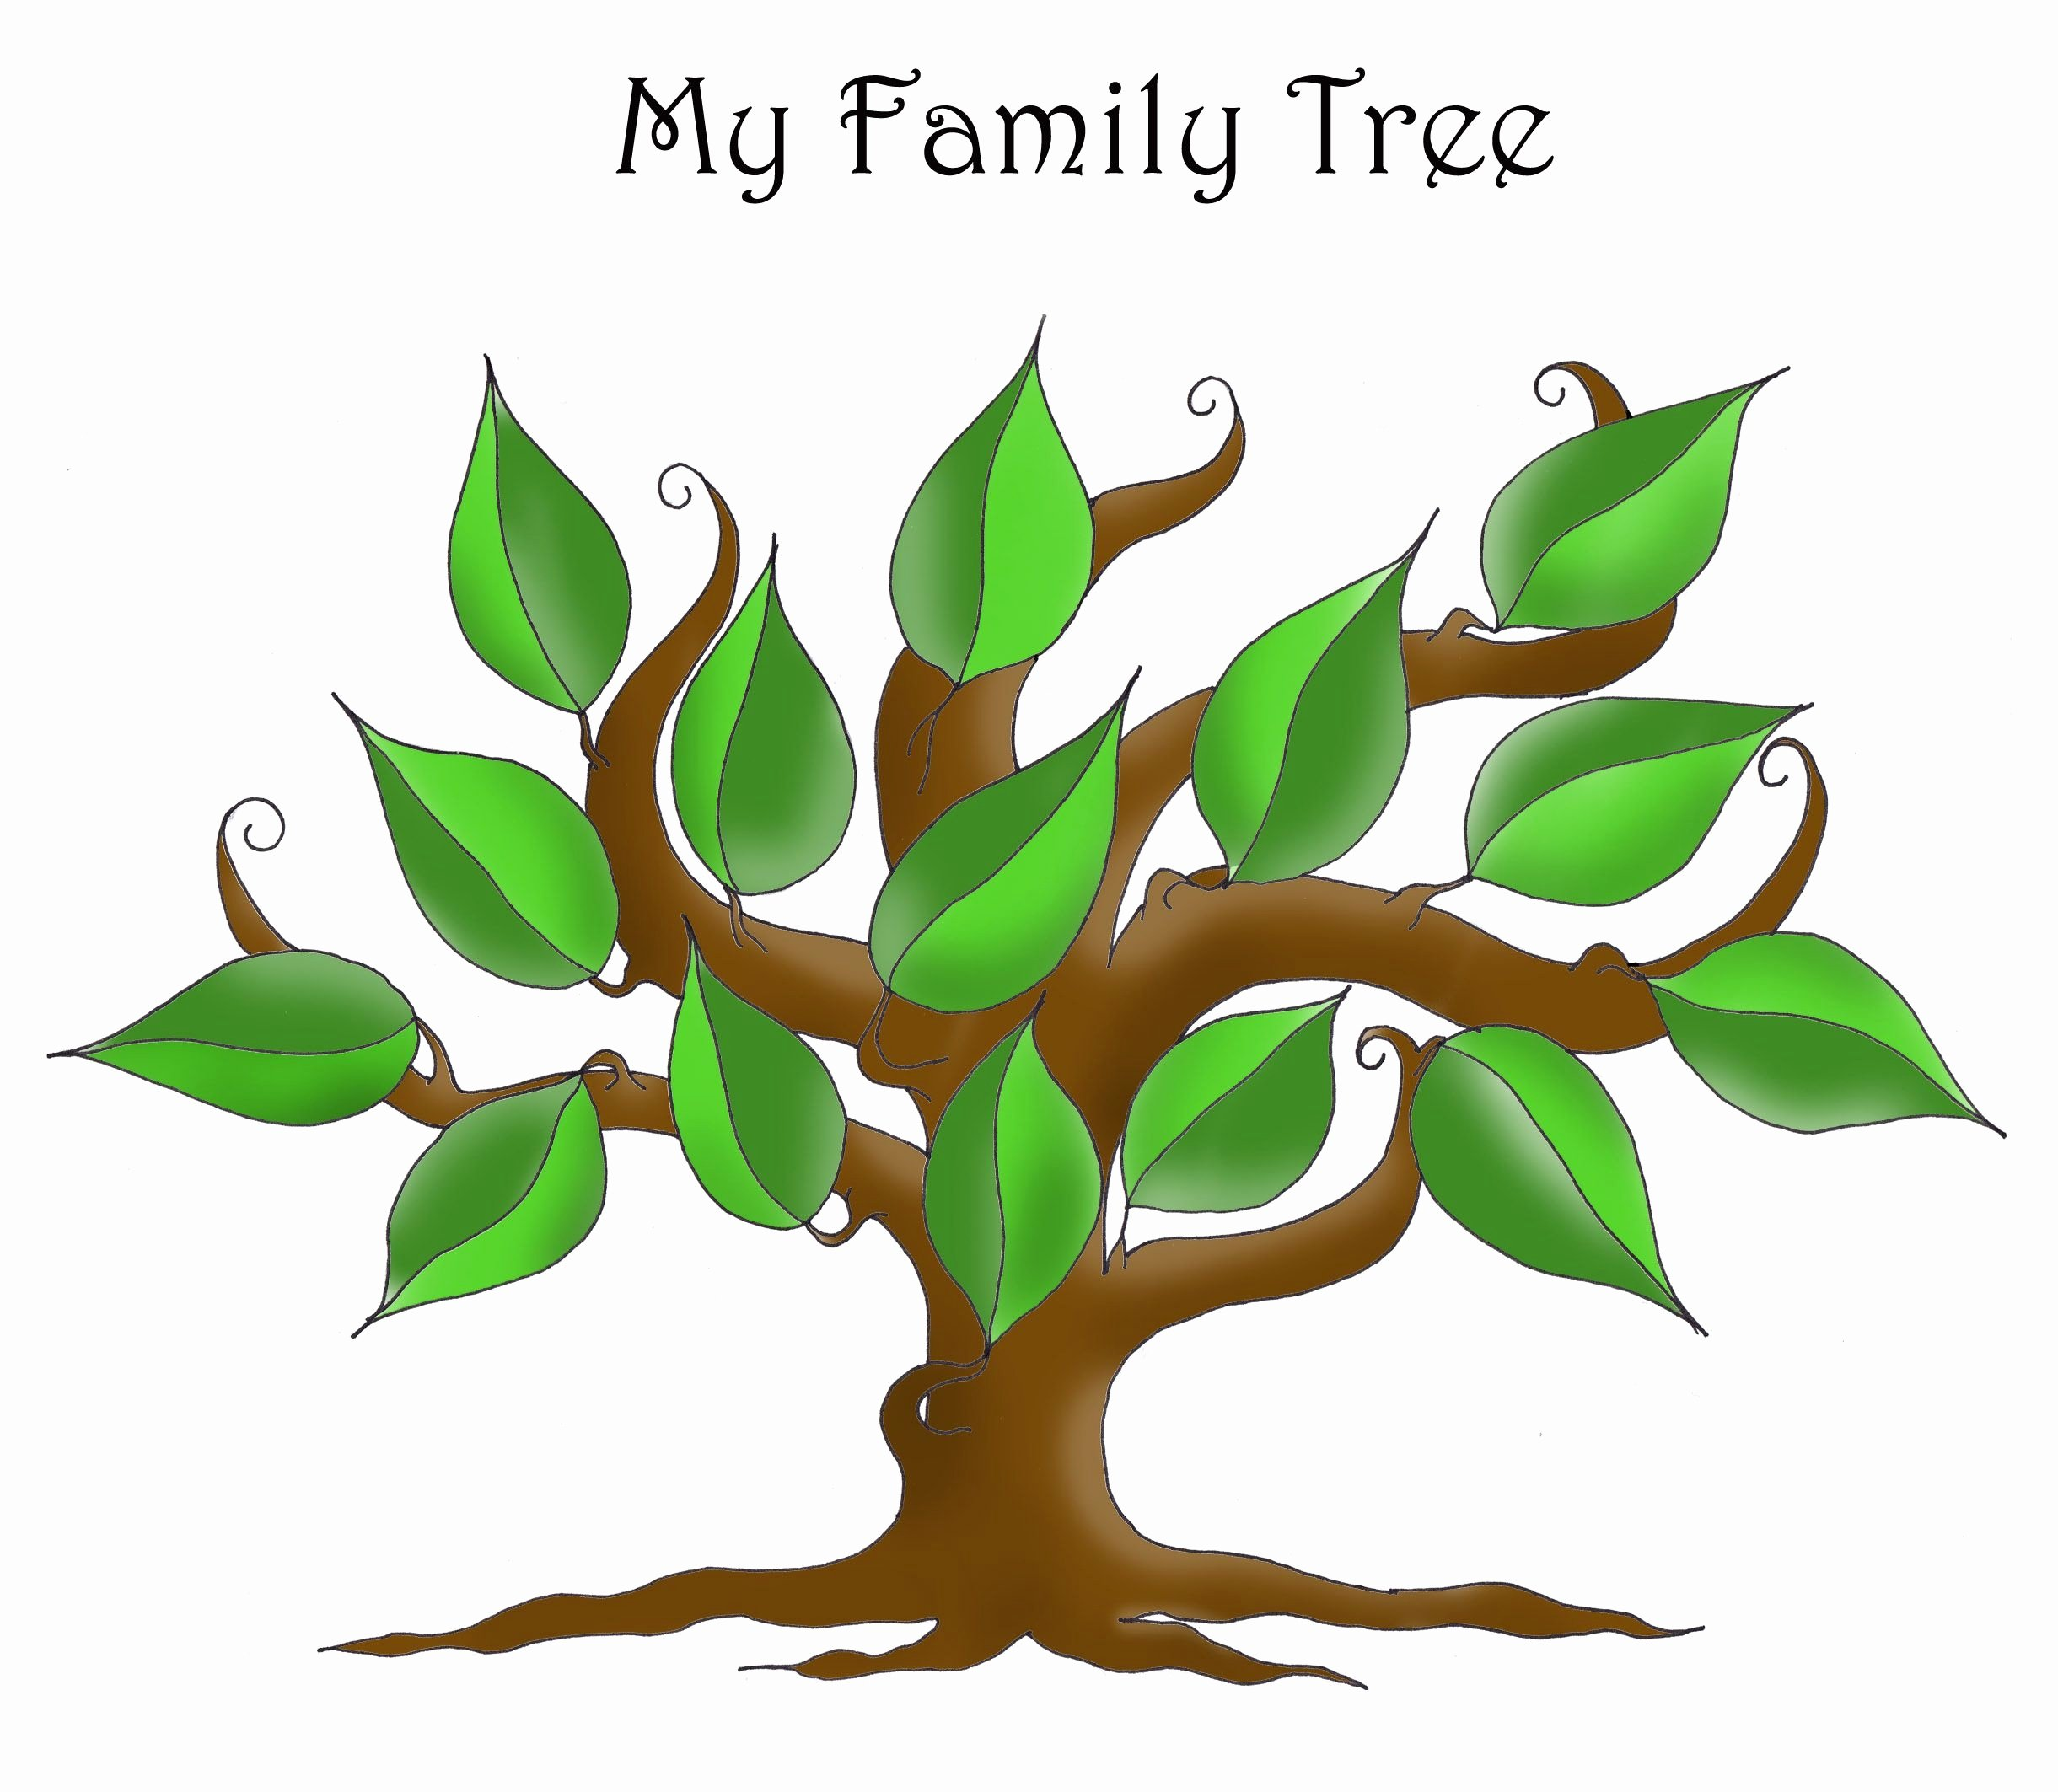 Editable Family Tree Templates Lovely Free Editable Family Tree Template Daily Roabox